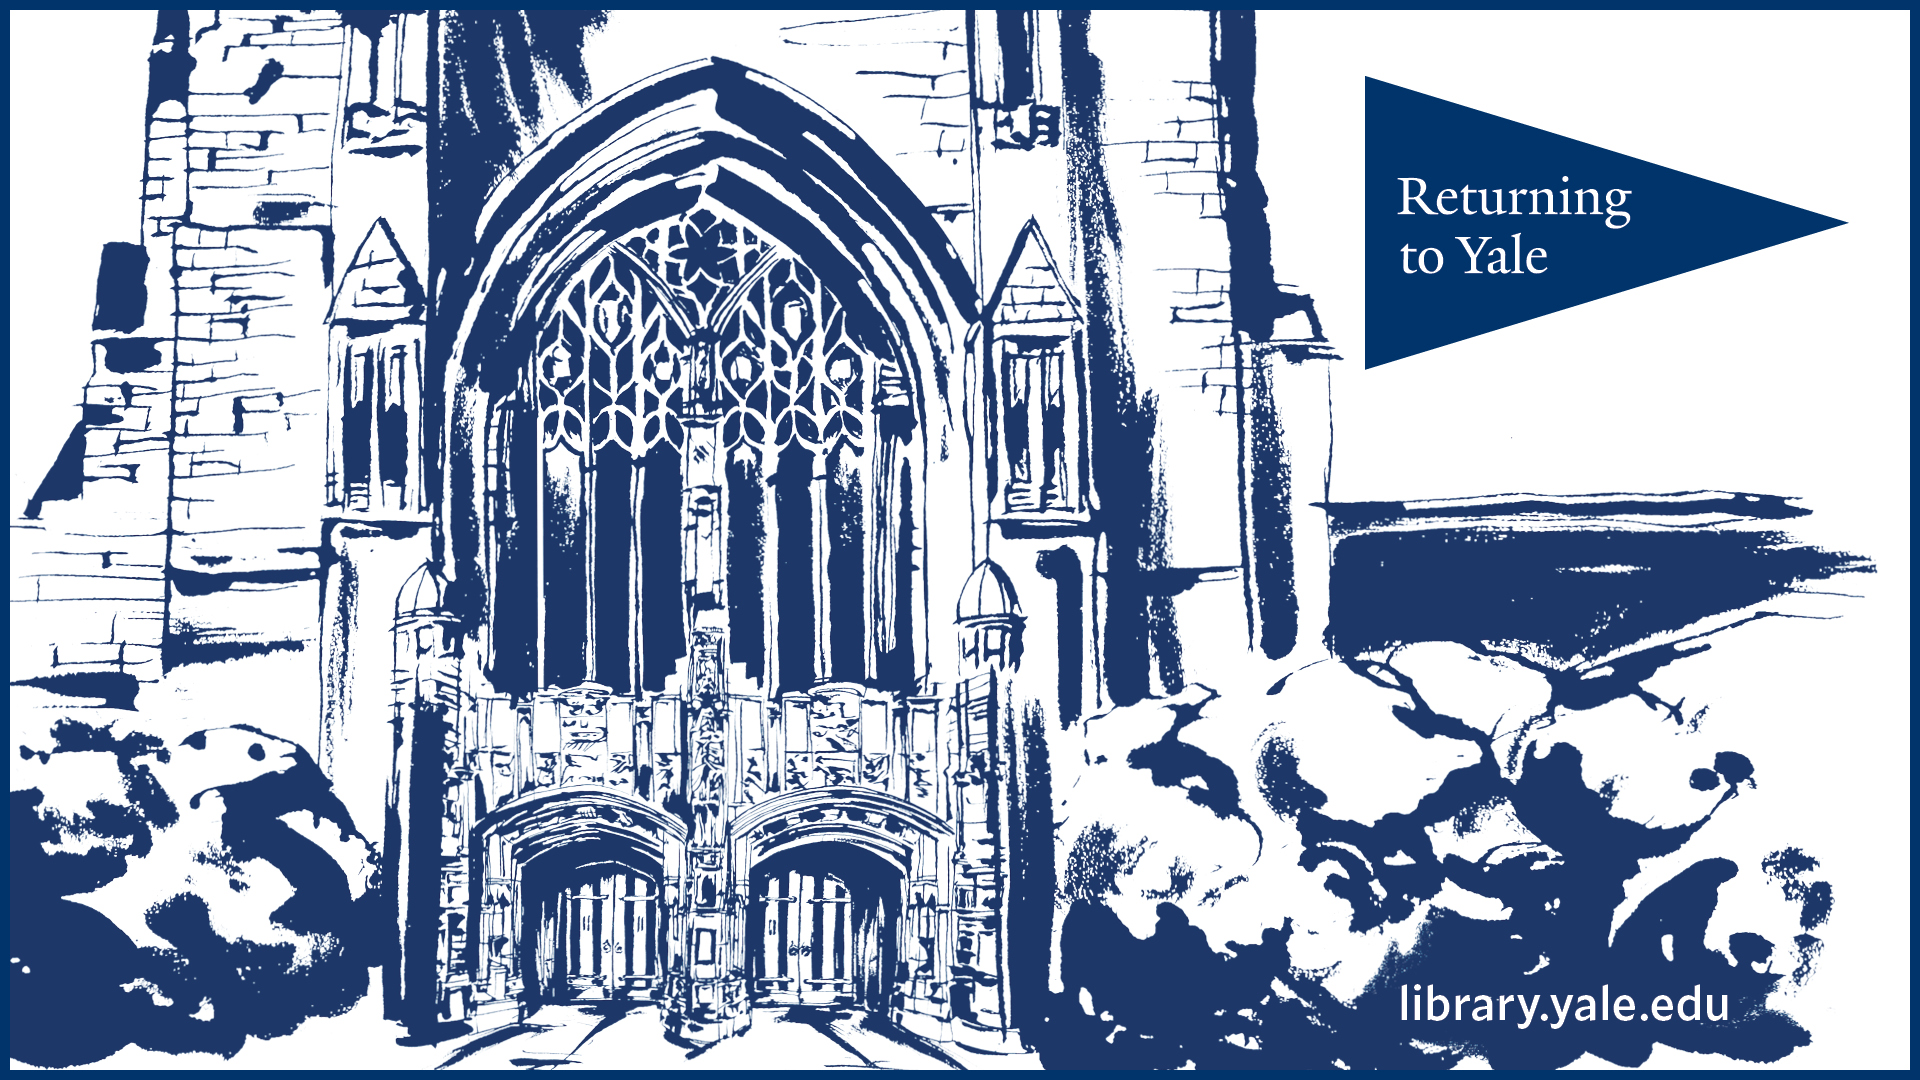 Blue and white illustratiion of the front doors of Sterling Library